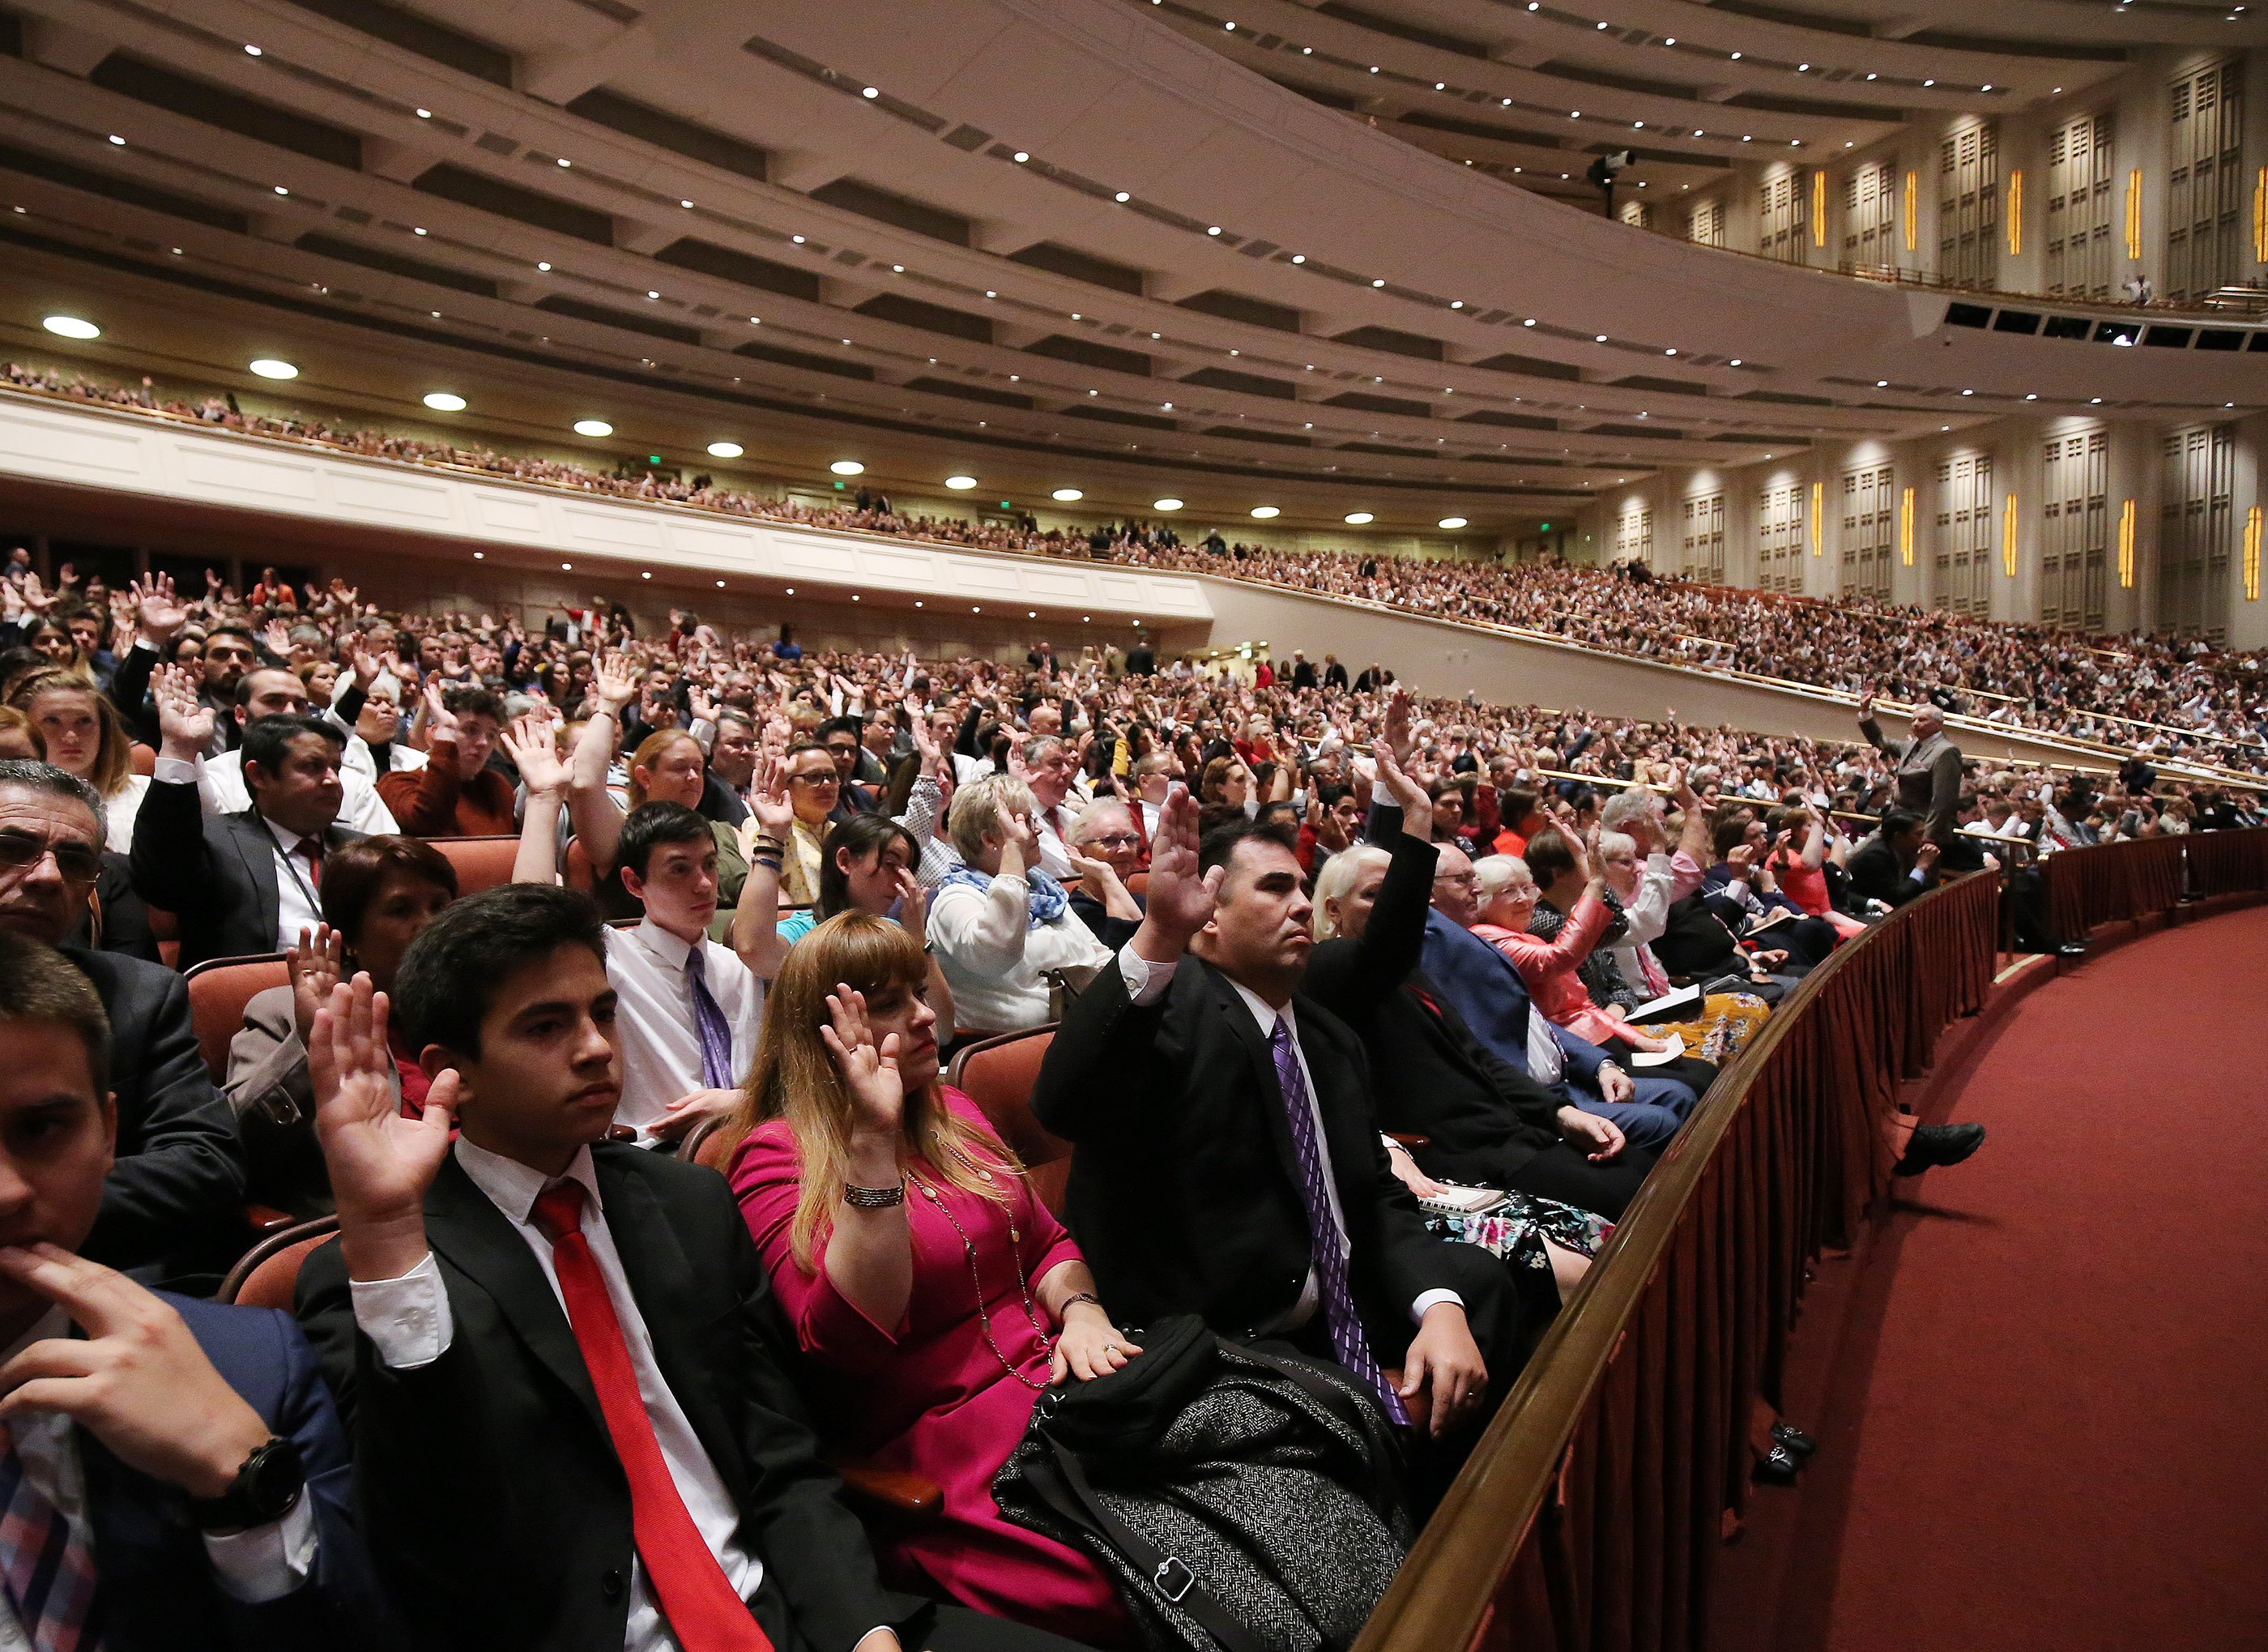 Attendees sustain general authorities during the Saturday afternoon session of the 188th Semiannual General Conference of The Church of Jesus Christ of Latter-day Saints in the Conference Center in Salt Lake City on Saturday, Oct. 6, 2018.